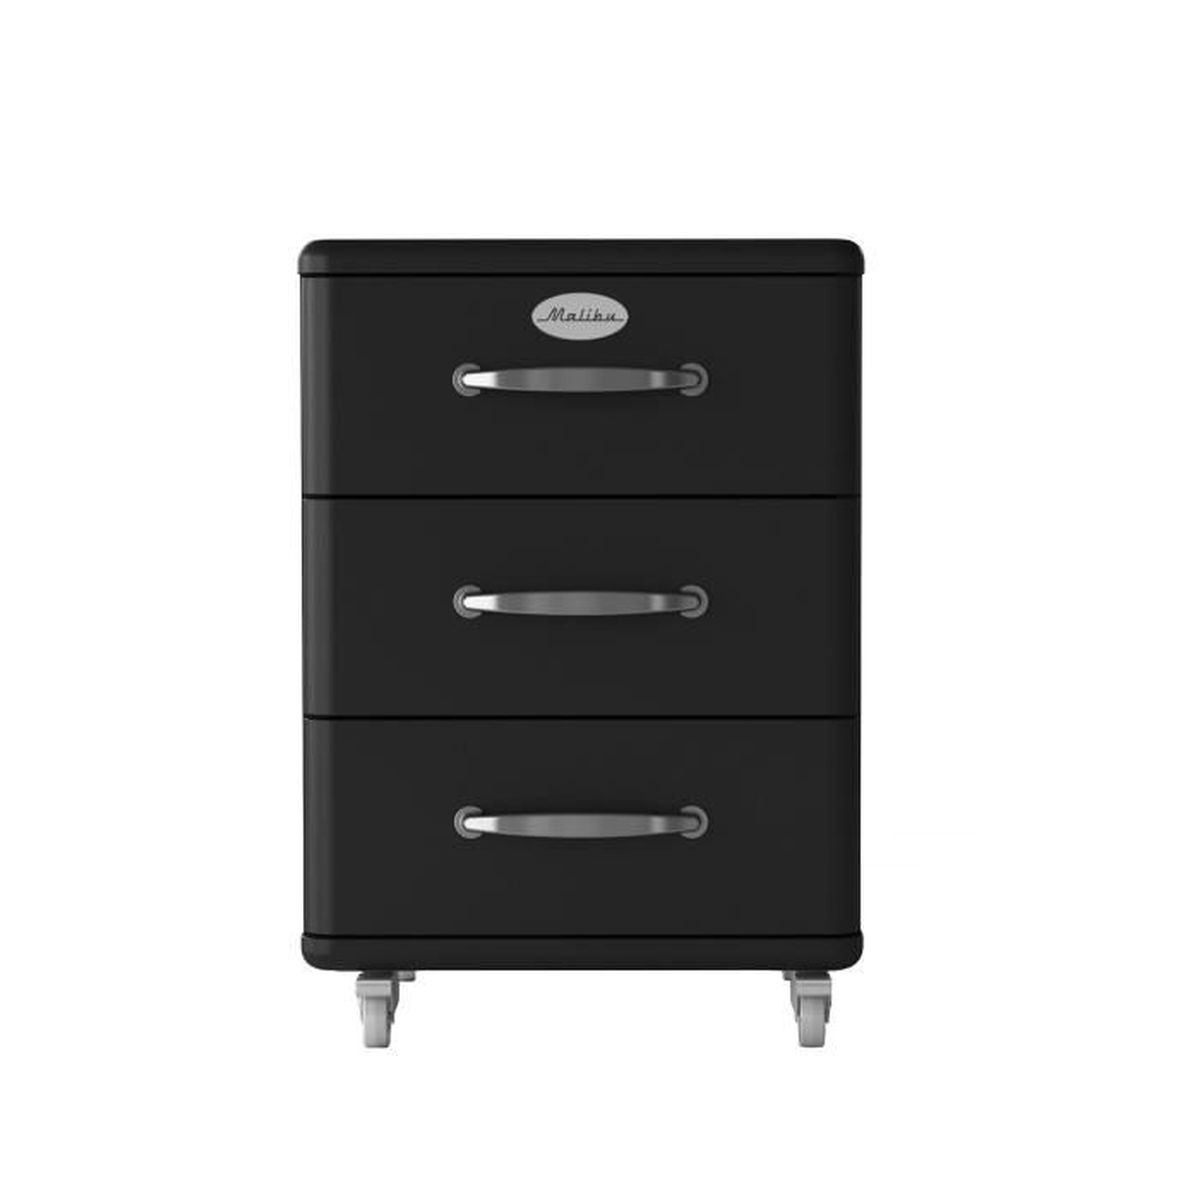 malibu caisson noir 3 tiroirs roulettes achat vente. Black Bedroom Furniture Sets. Home Design Ideas